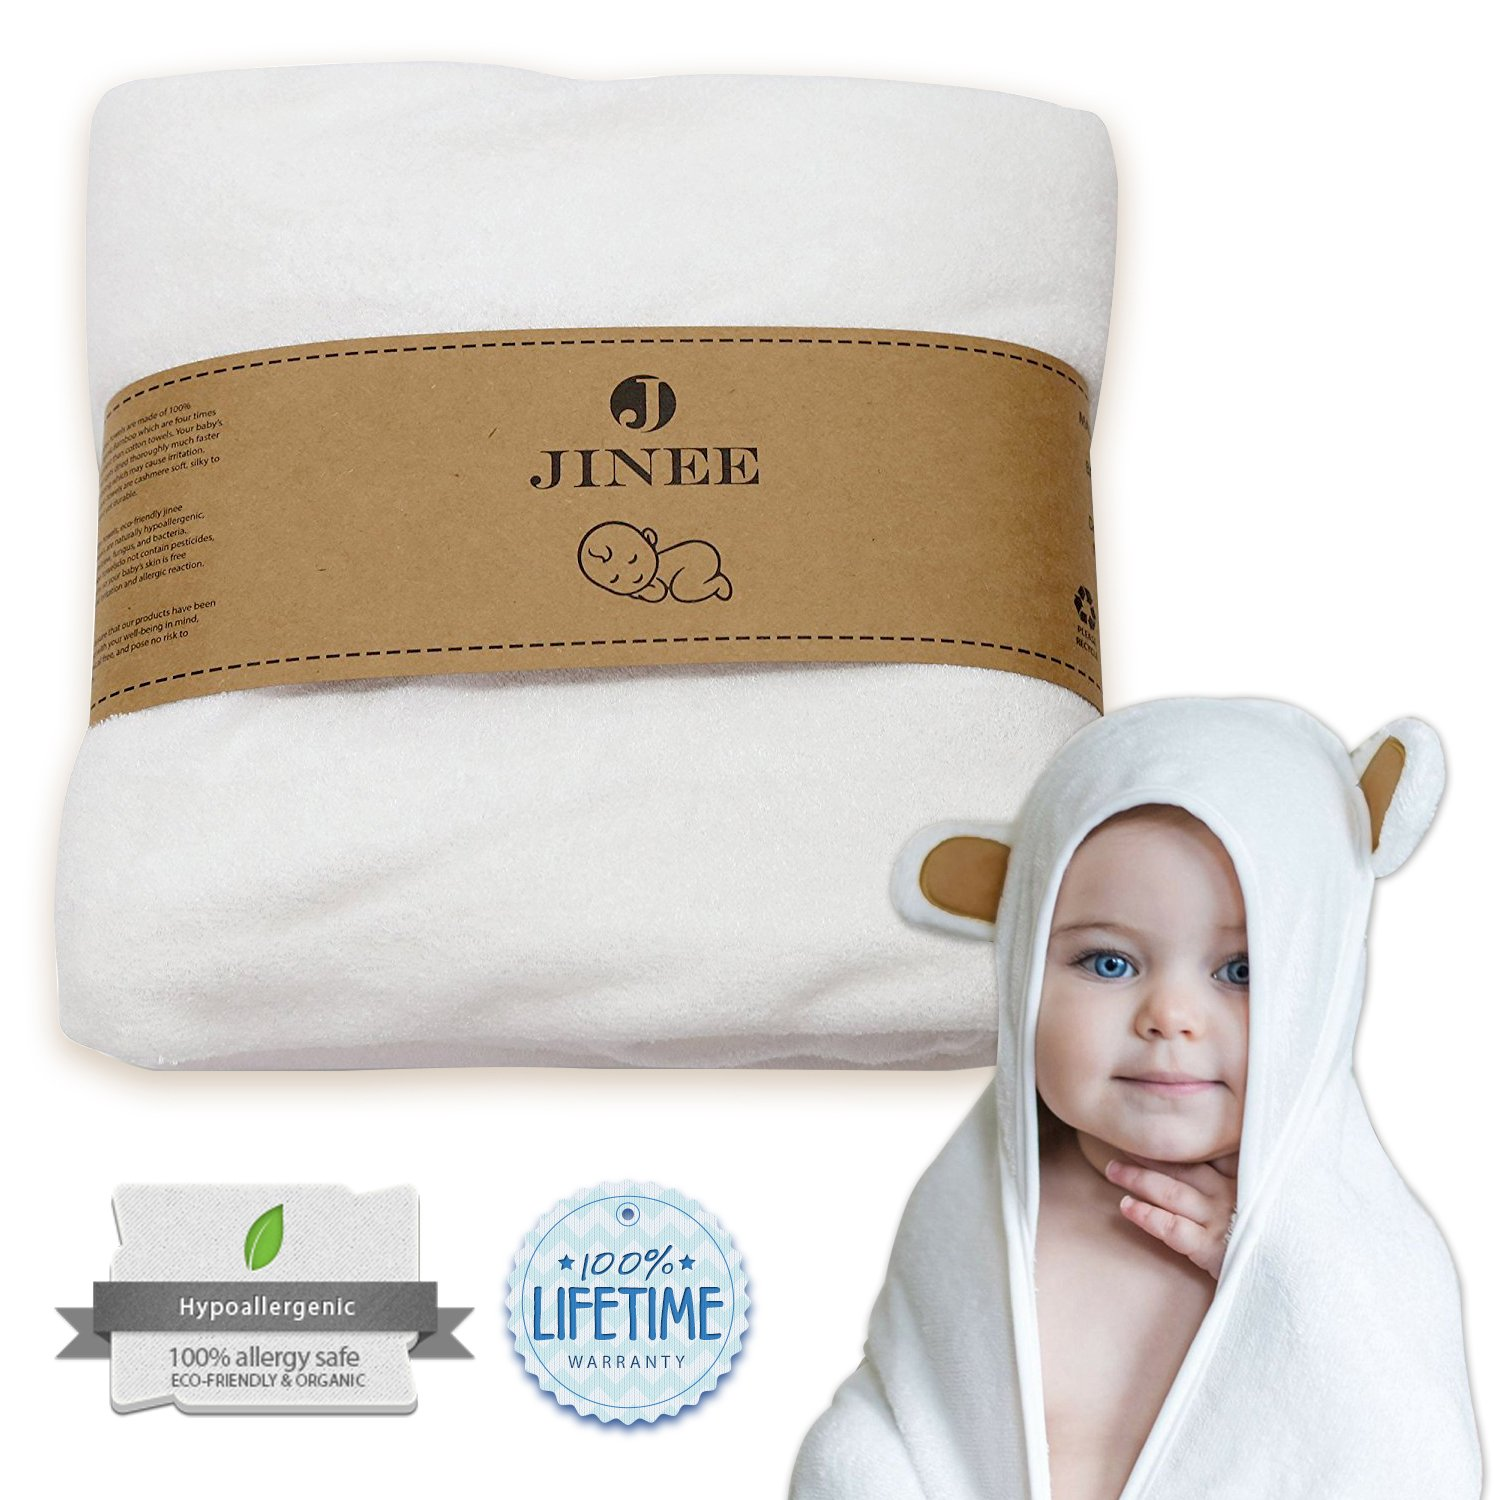 "Jinee Organic Hooded Baby Towel - Ultra Soft Natural Bamboo Towels with Hood for Boy, Girl, Infant, Newborn or Toddlers - Keeps Your Little One Dry & Warm - Hypoallergenic, Antibacterial, 35"" x 35"" 35"" x 35"" baby bamboo hooded towel"